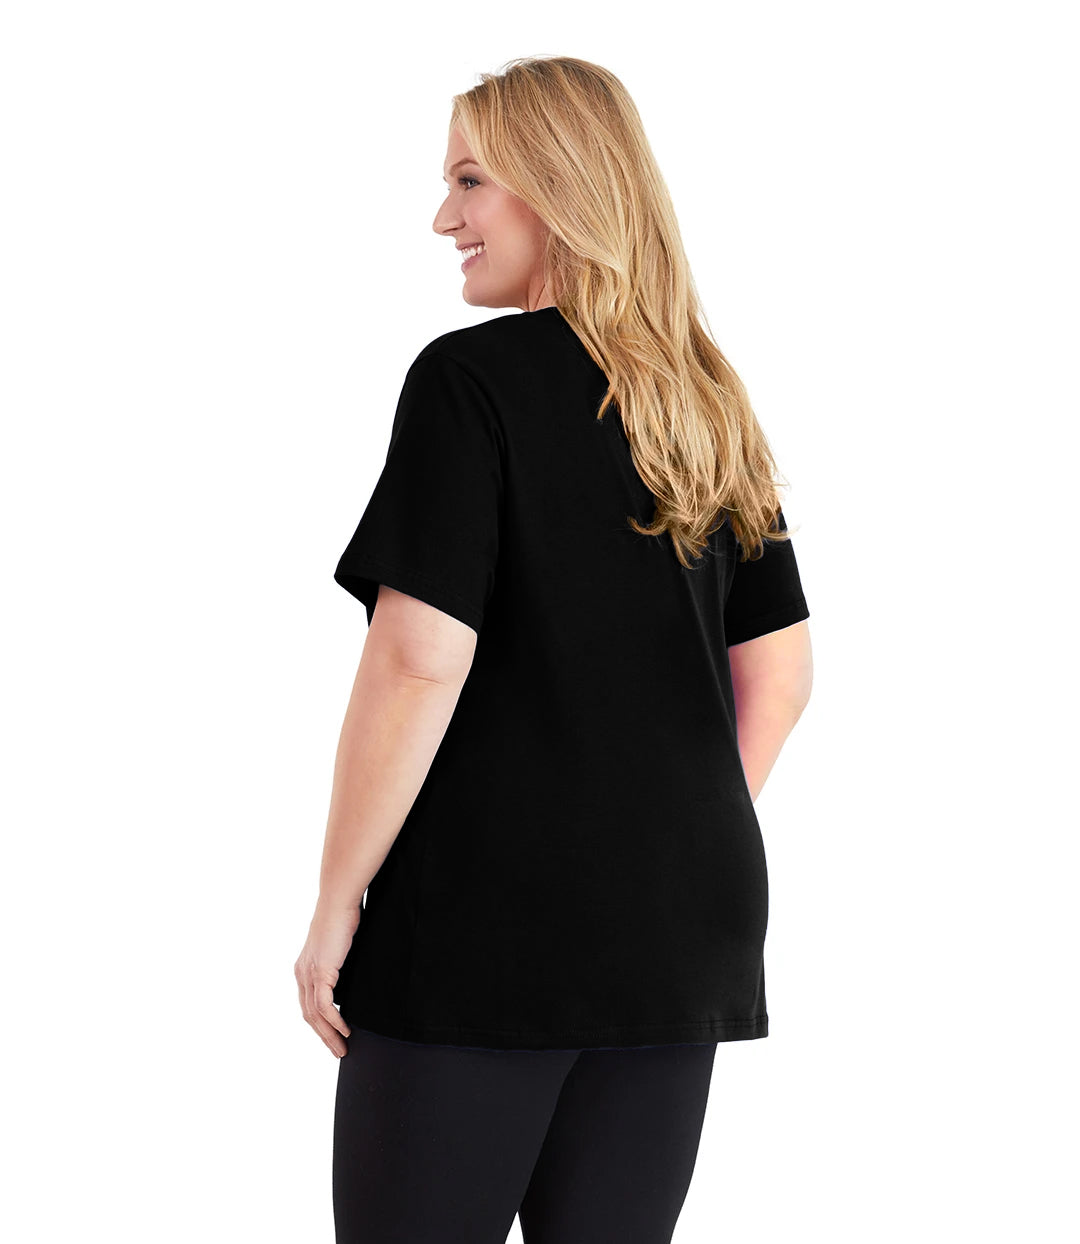 Stretch Naturals V-Neck Tee Basic Colors-Tops Short Sleeve-Hop Wo Trading Co Ltd-XL-Black-JunoActive